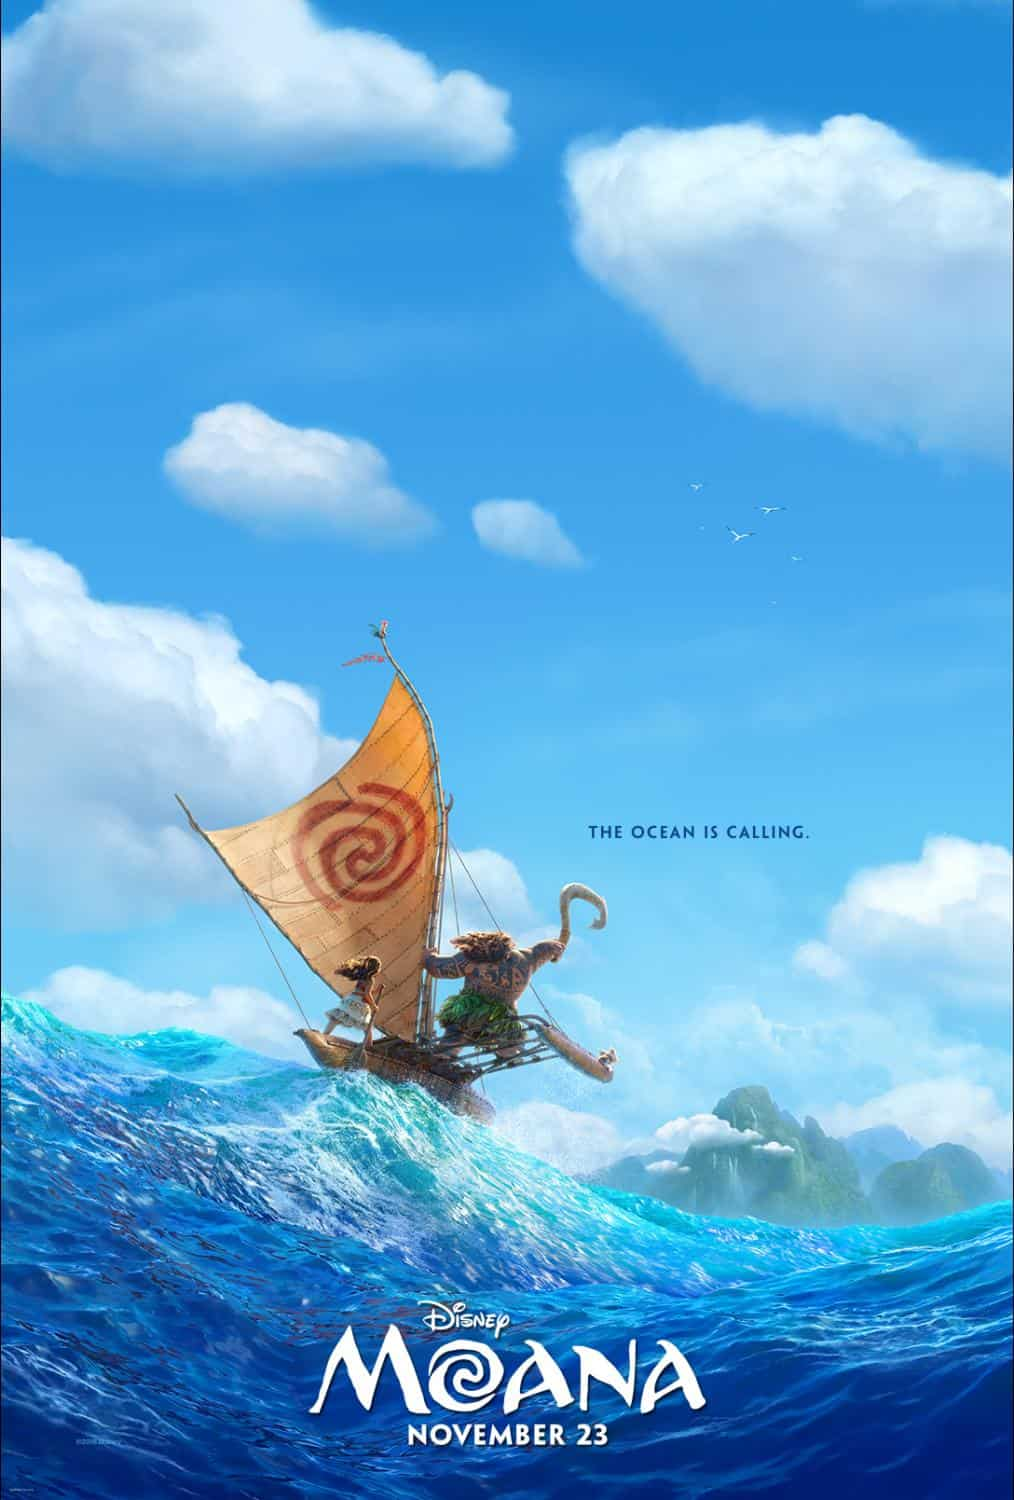 Moana Helps Break Box Office Records faithandfamilyfun.com